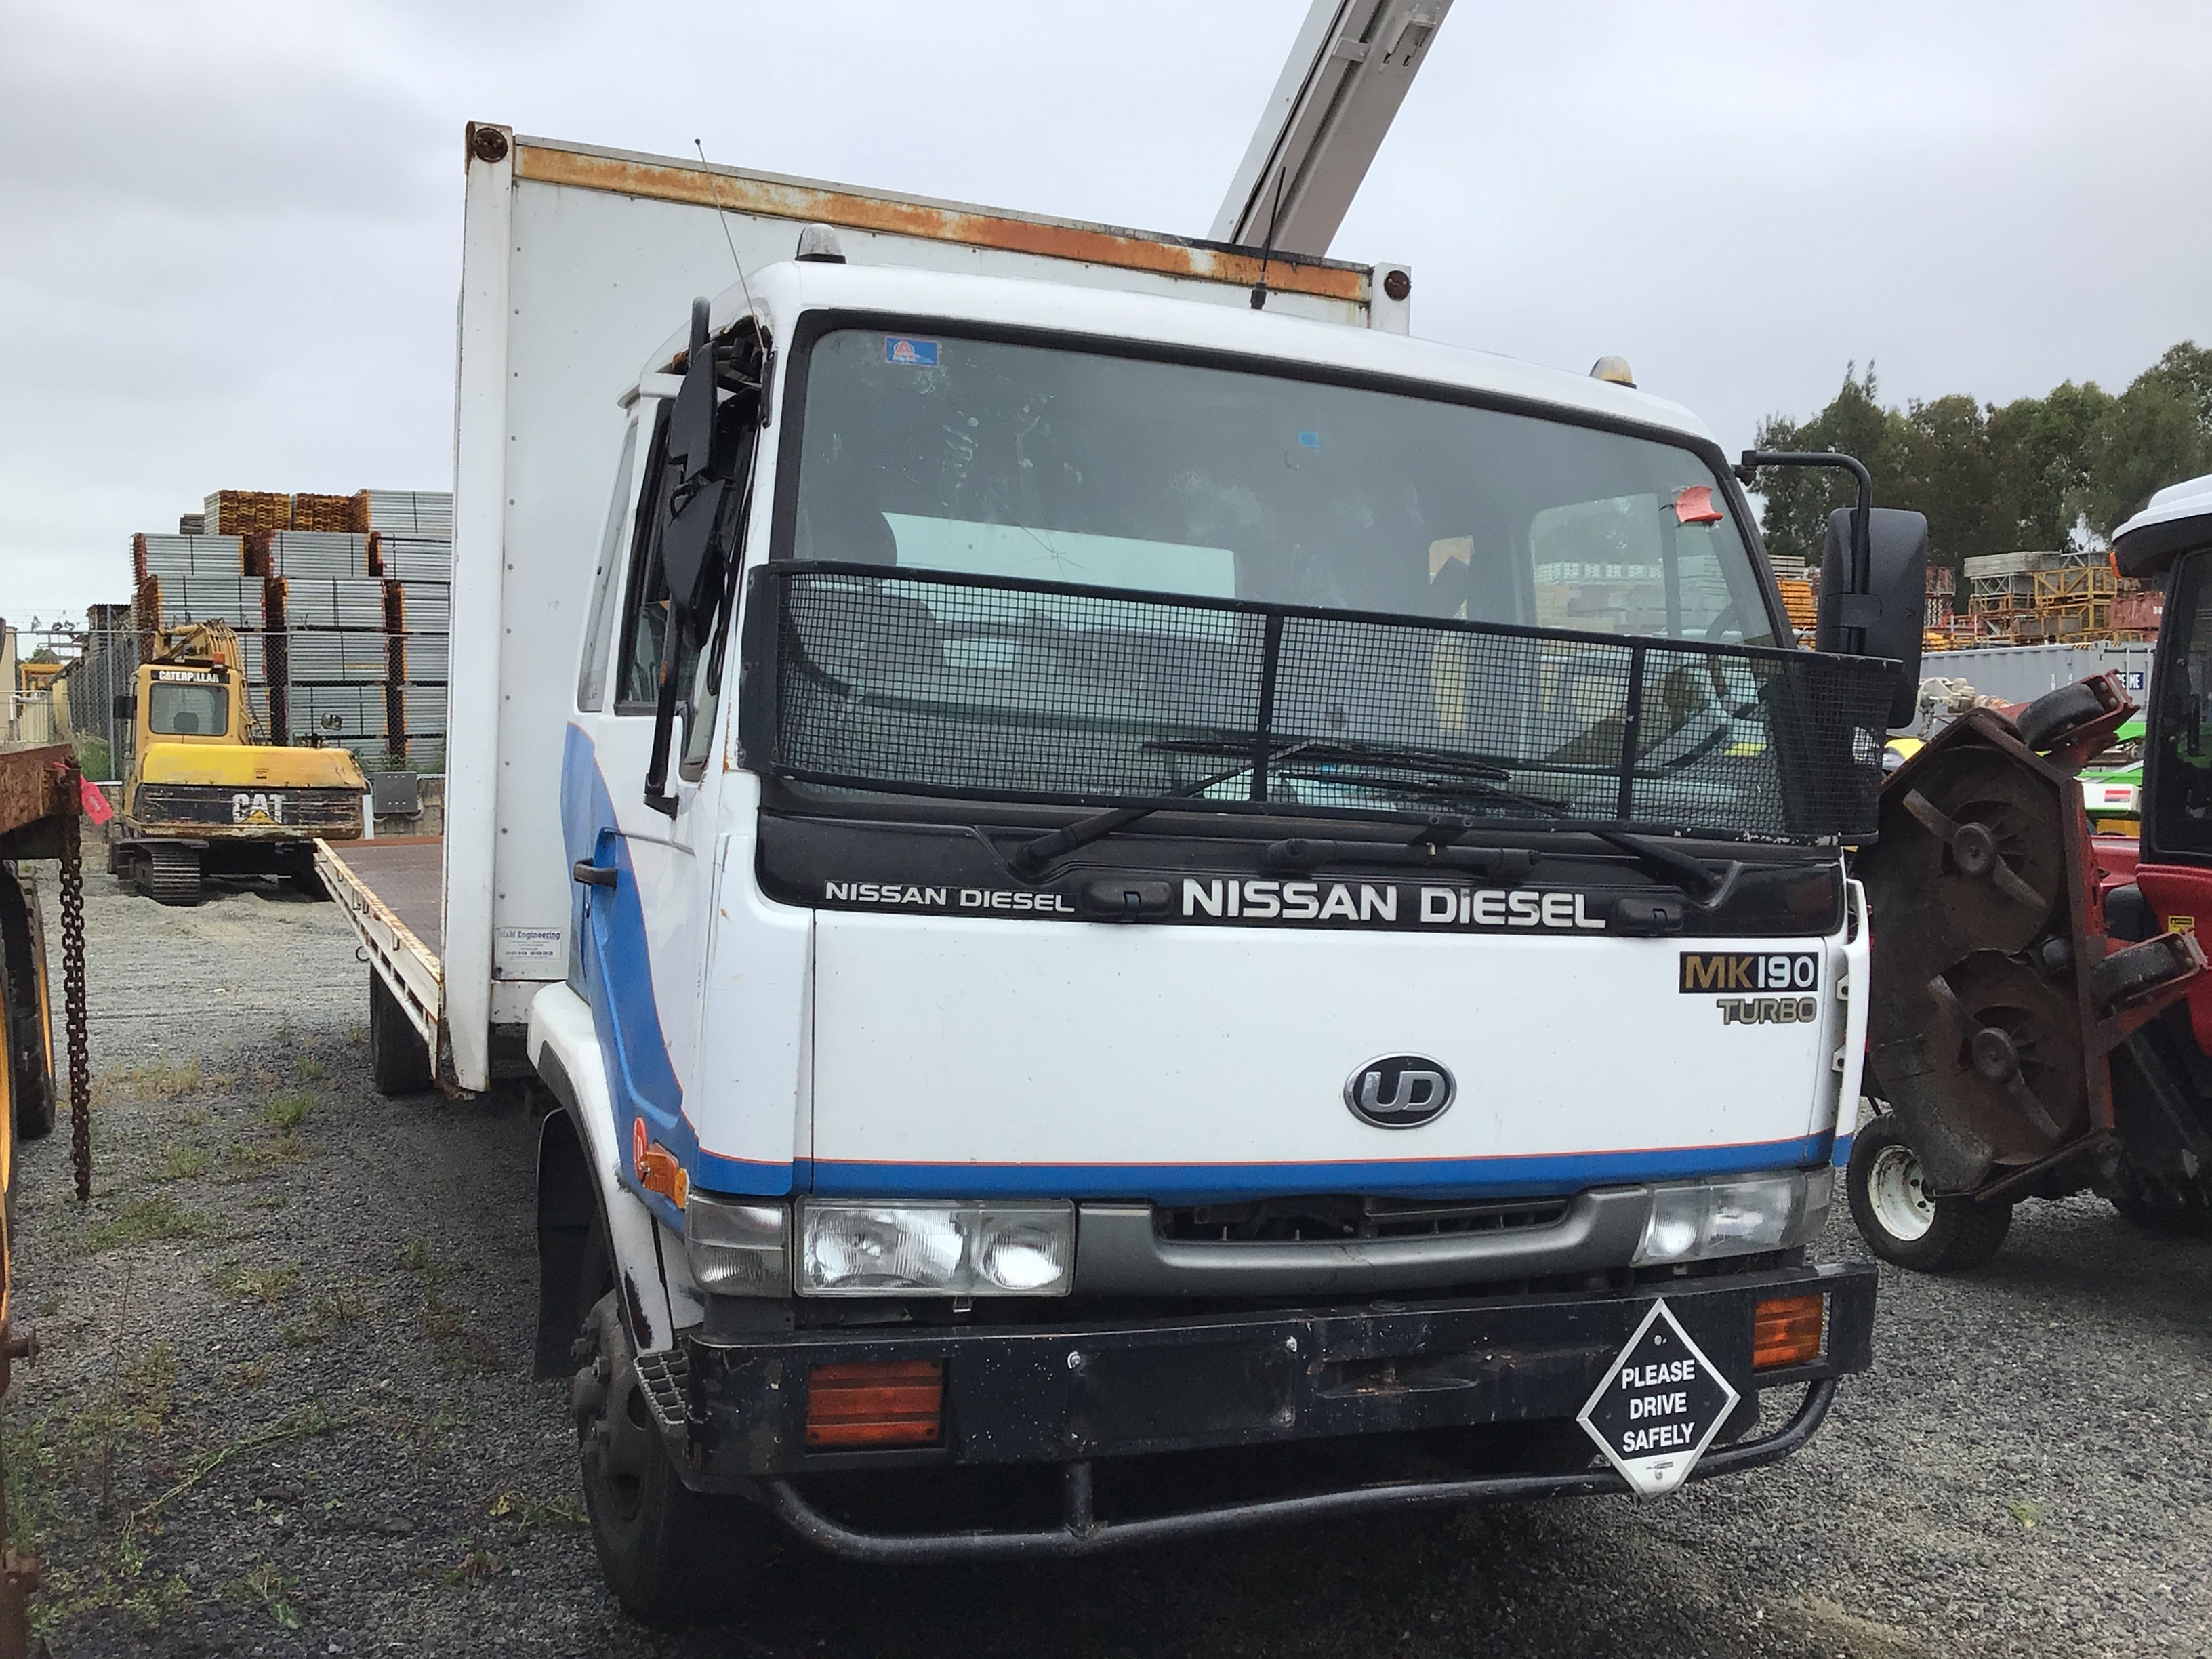 2002 UD MK190 4 x 2 Cab Chassis Truck